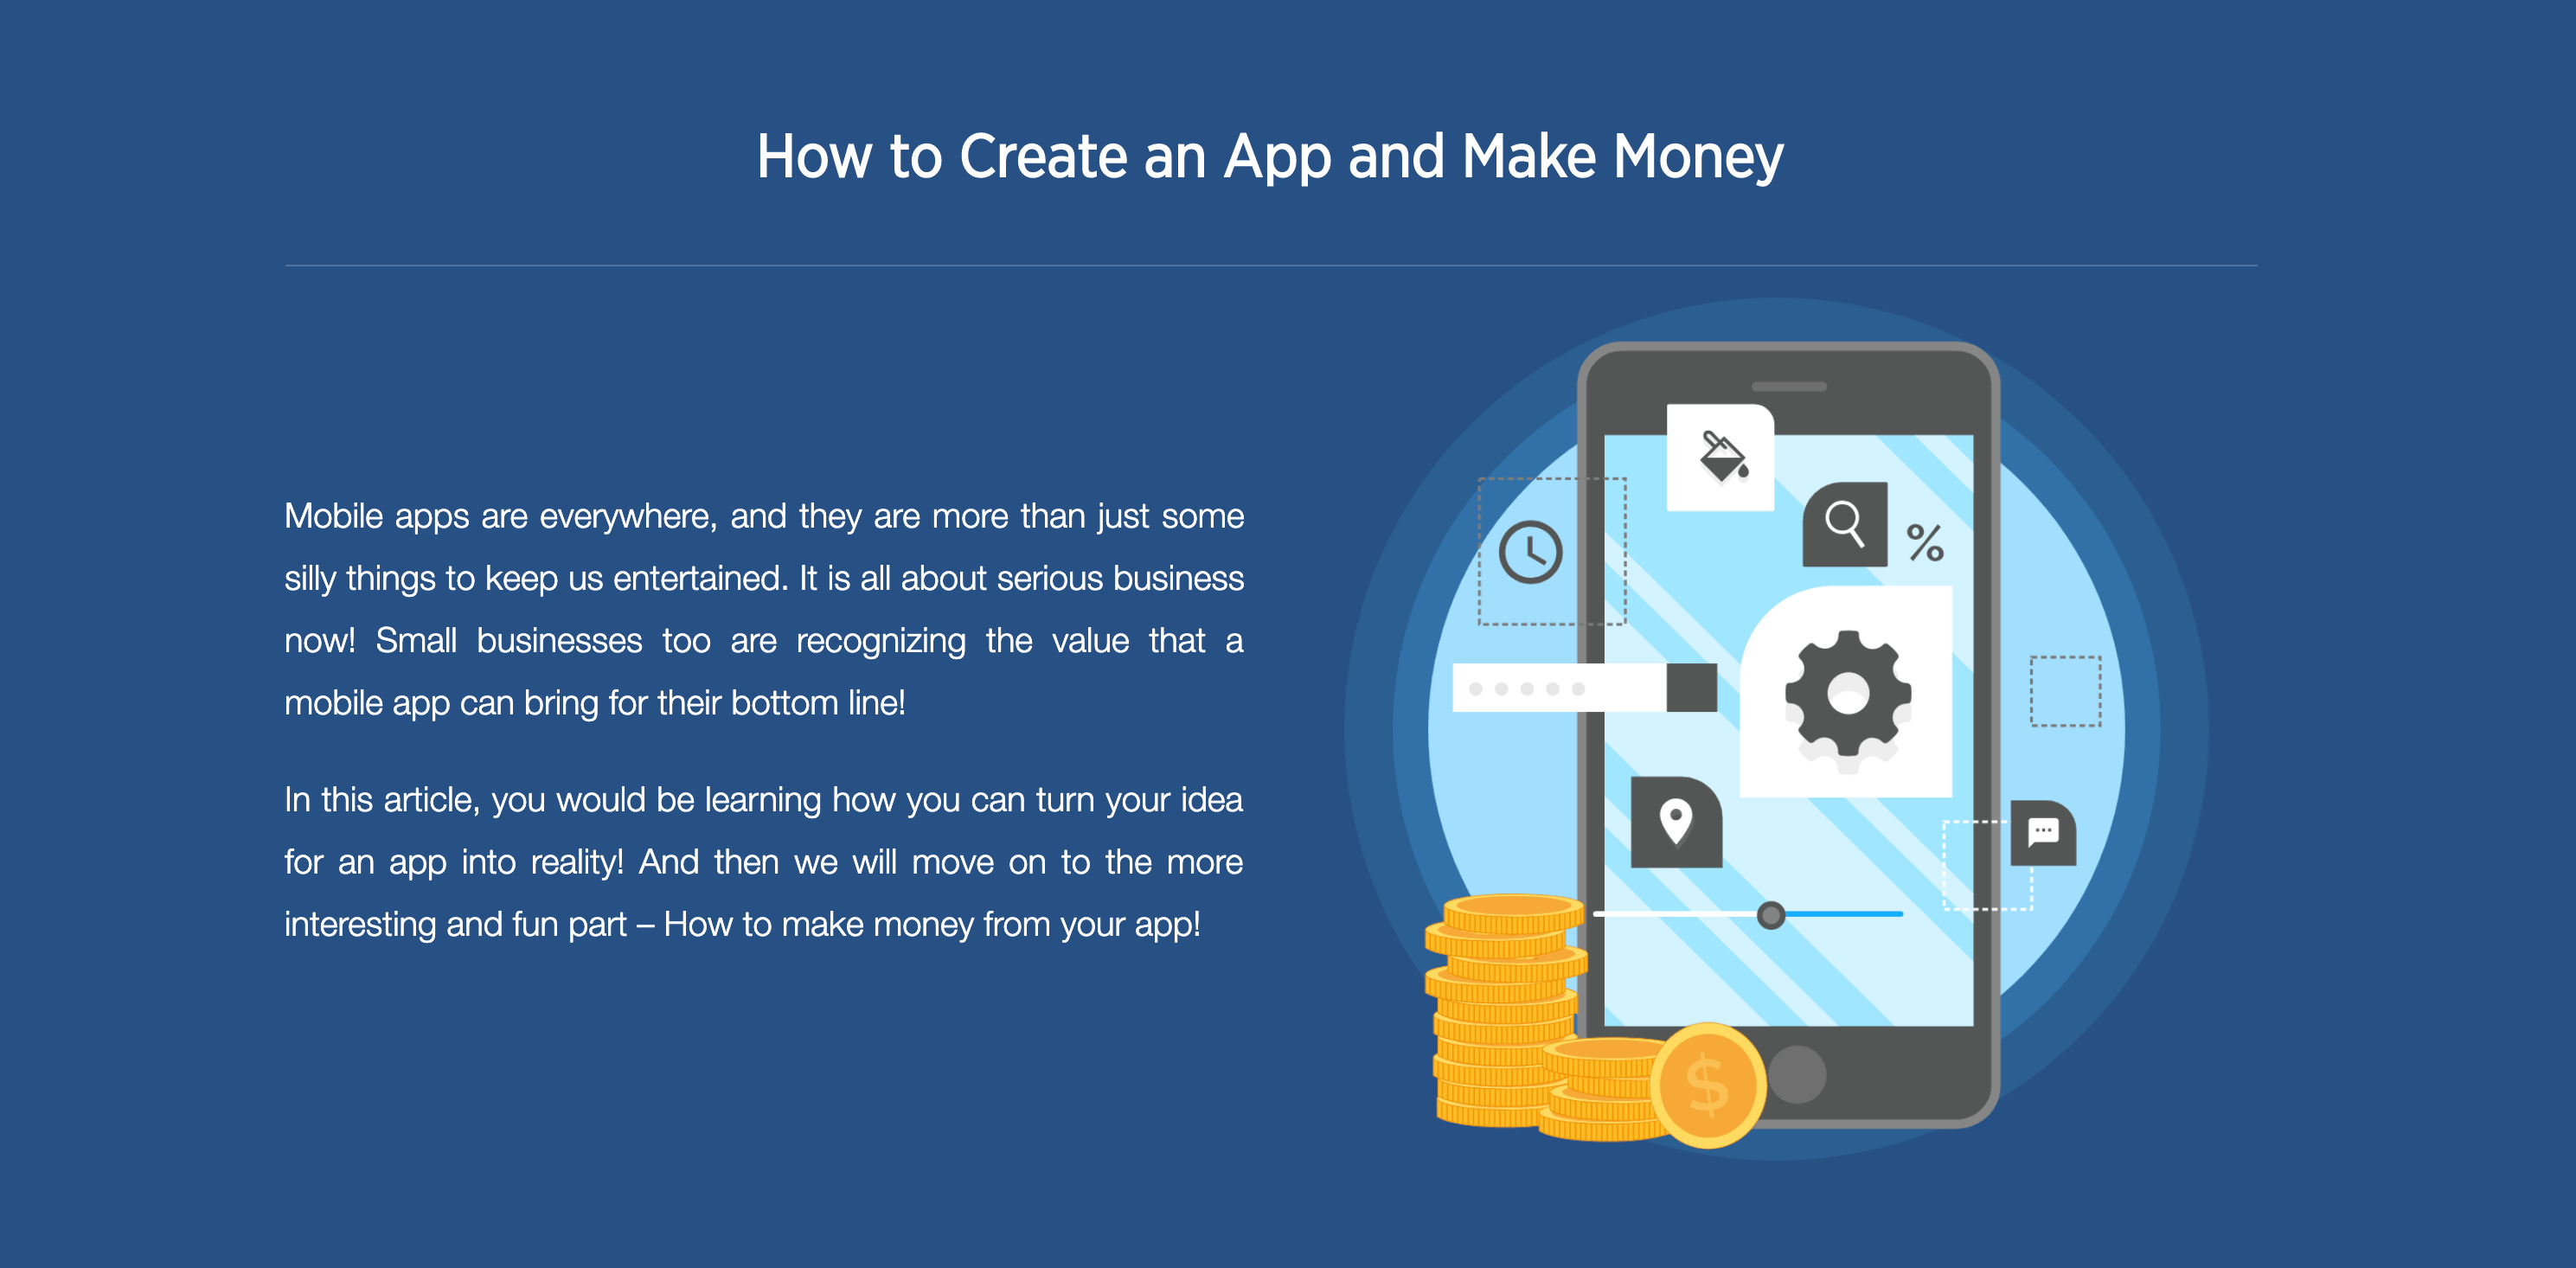 How to Create an App and Make Money from Apps?